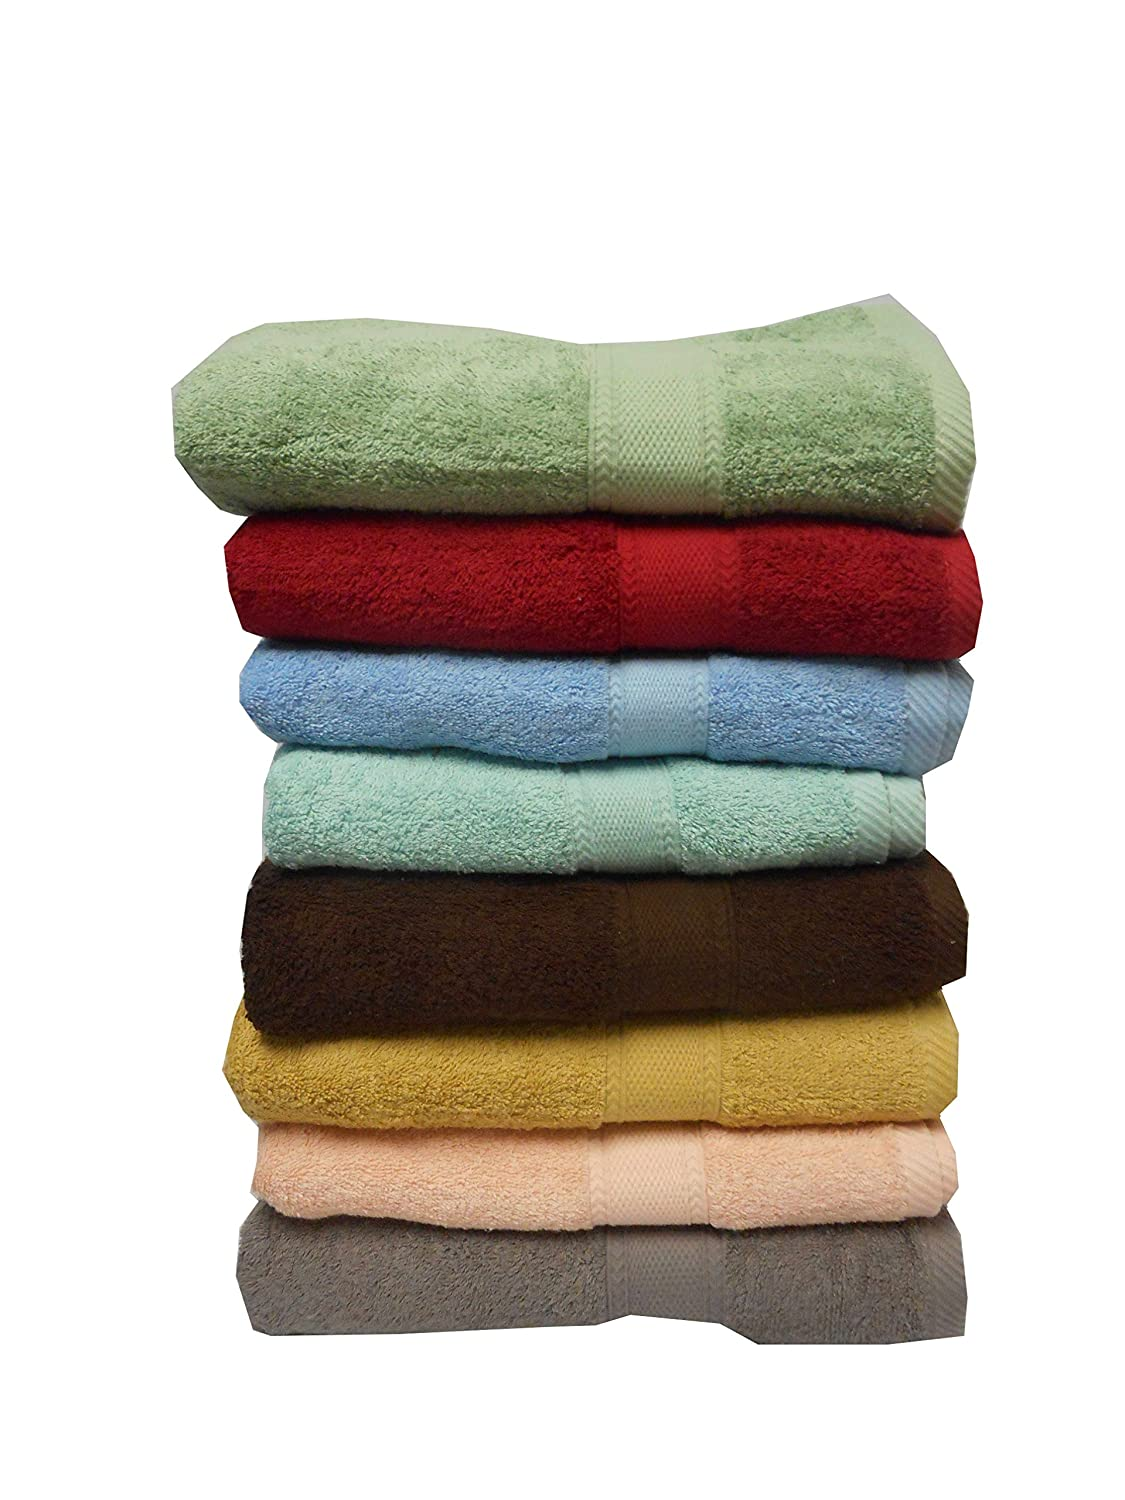 Livingston Home Standard Quality 4 Pcs Pack Bath Towels Assorted Style & Color May Vary, 26 X 52 Inch, Multicolor